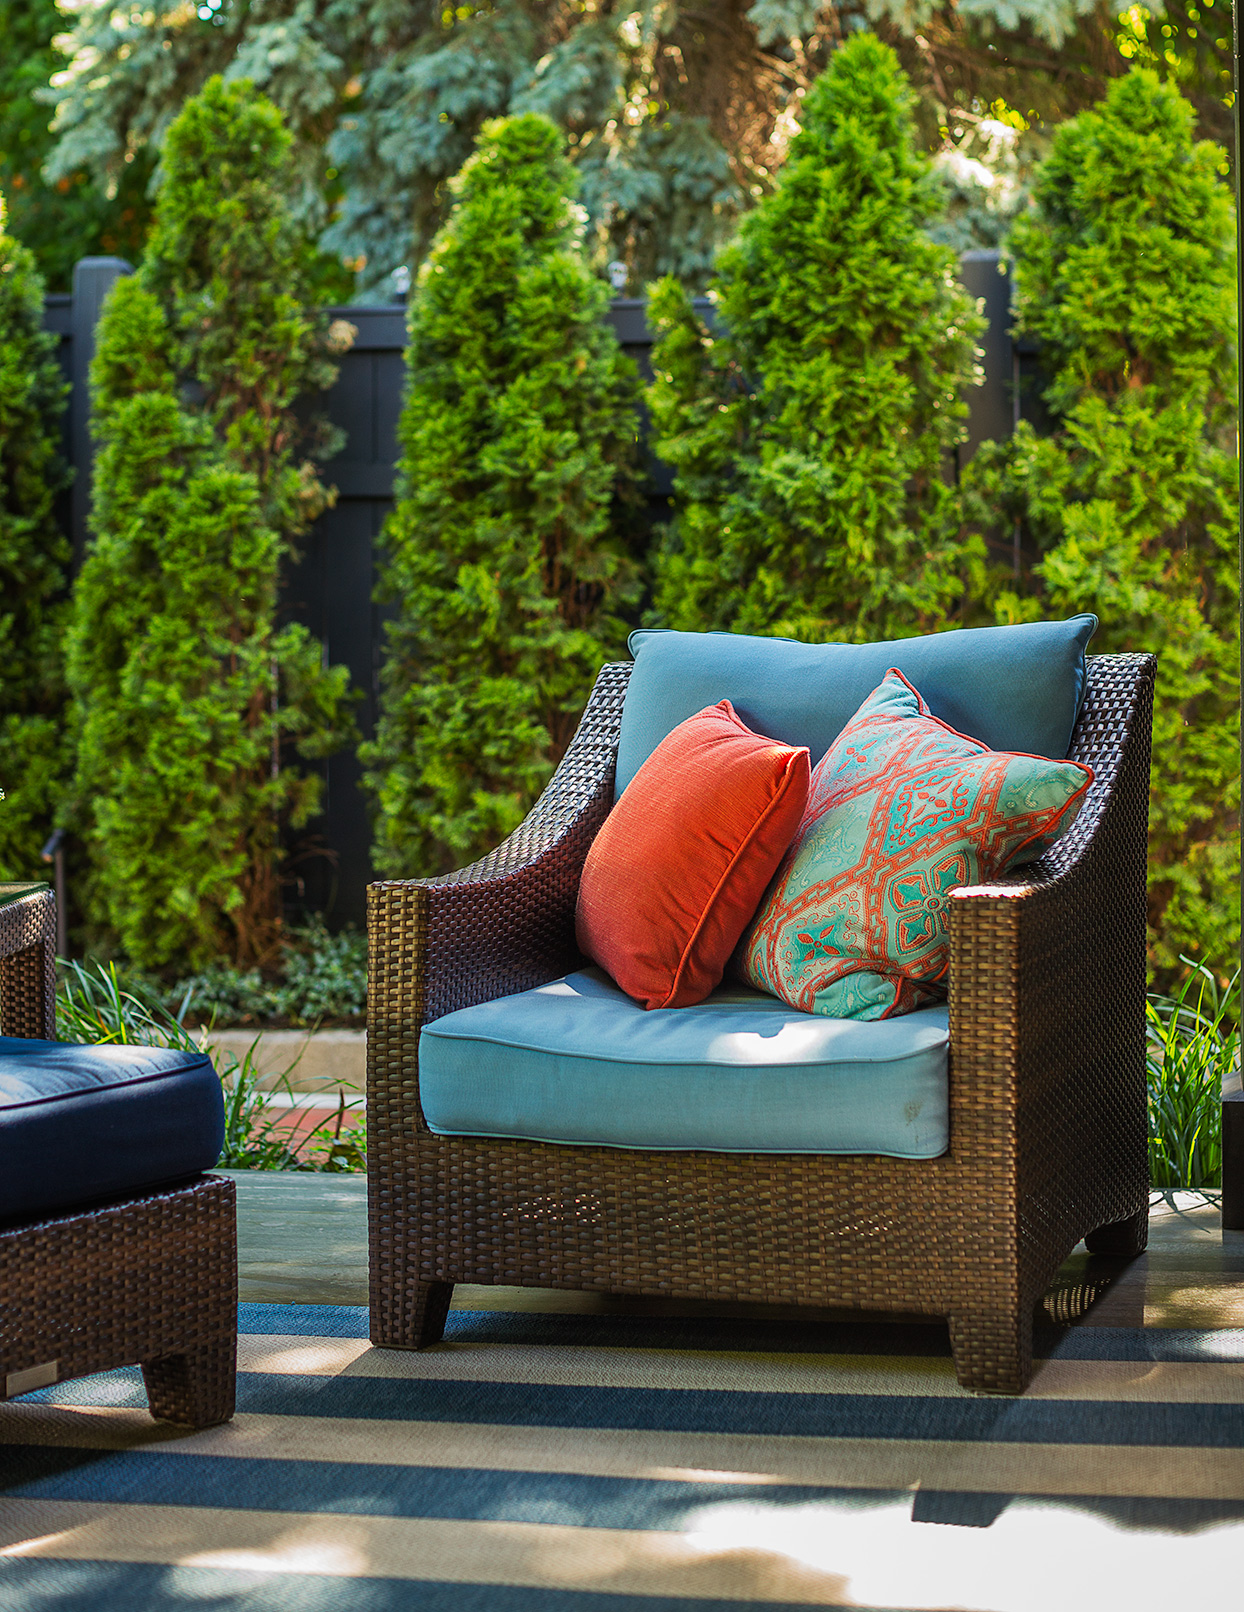 chair on patio with blue cushions and pillows